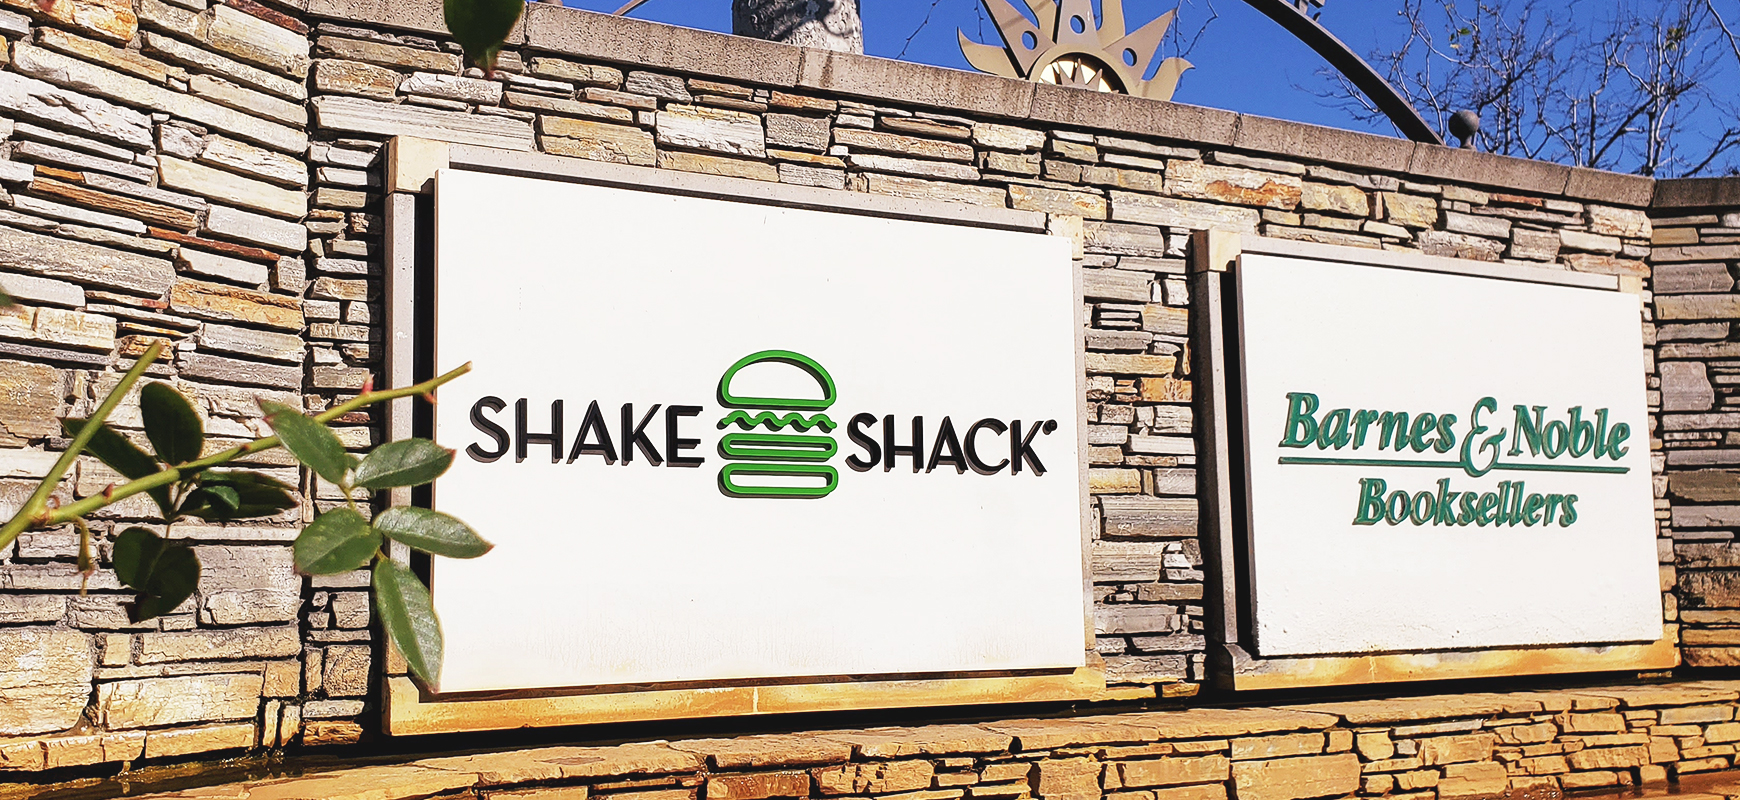 Shake Shack architectural monument sign made of acrylic for exterior branding